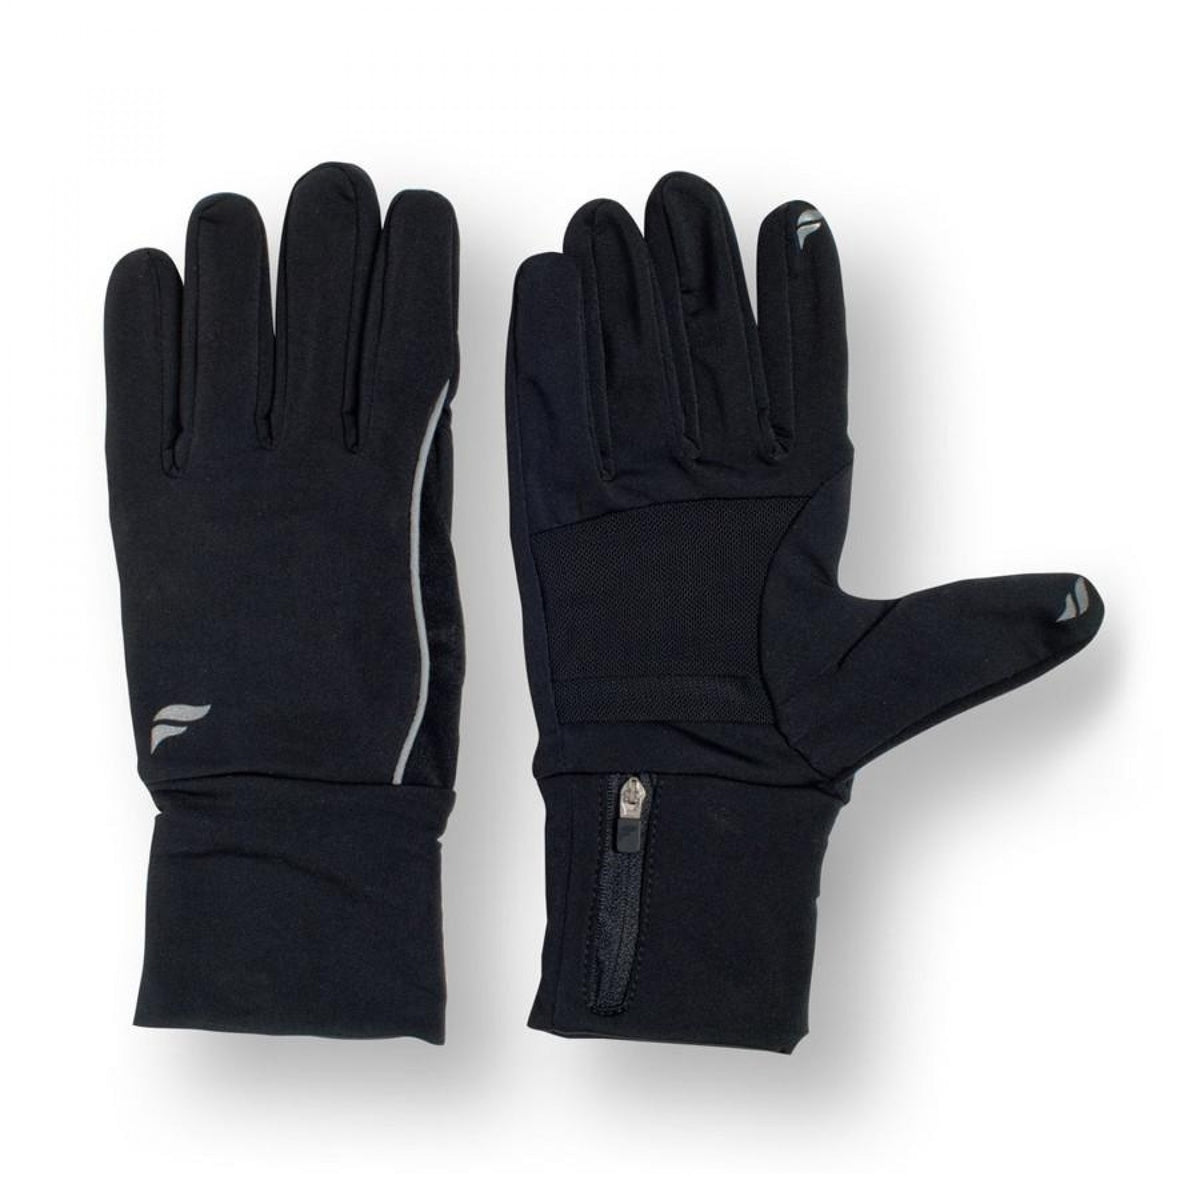 Fly Active Running Glove Pocket Mens